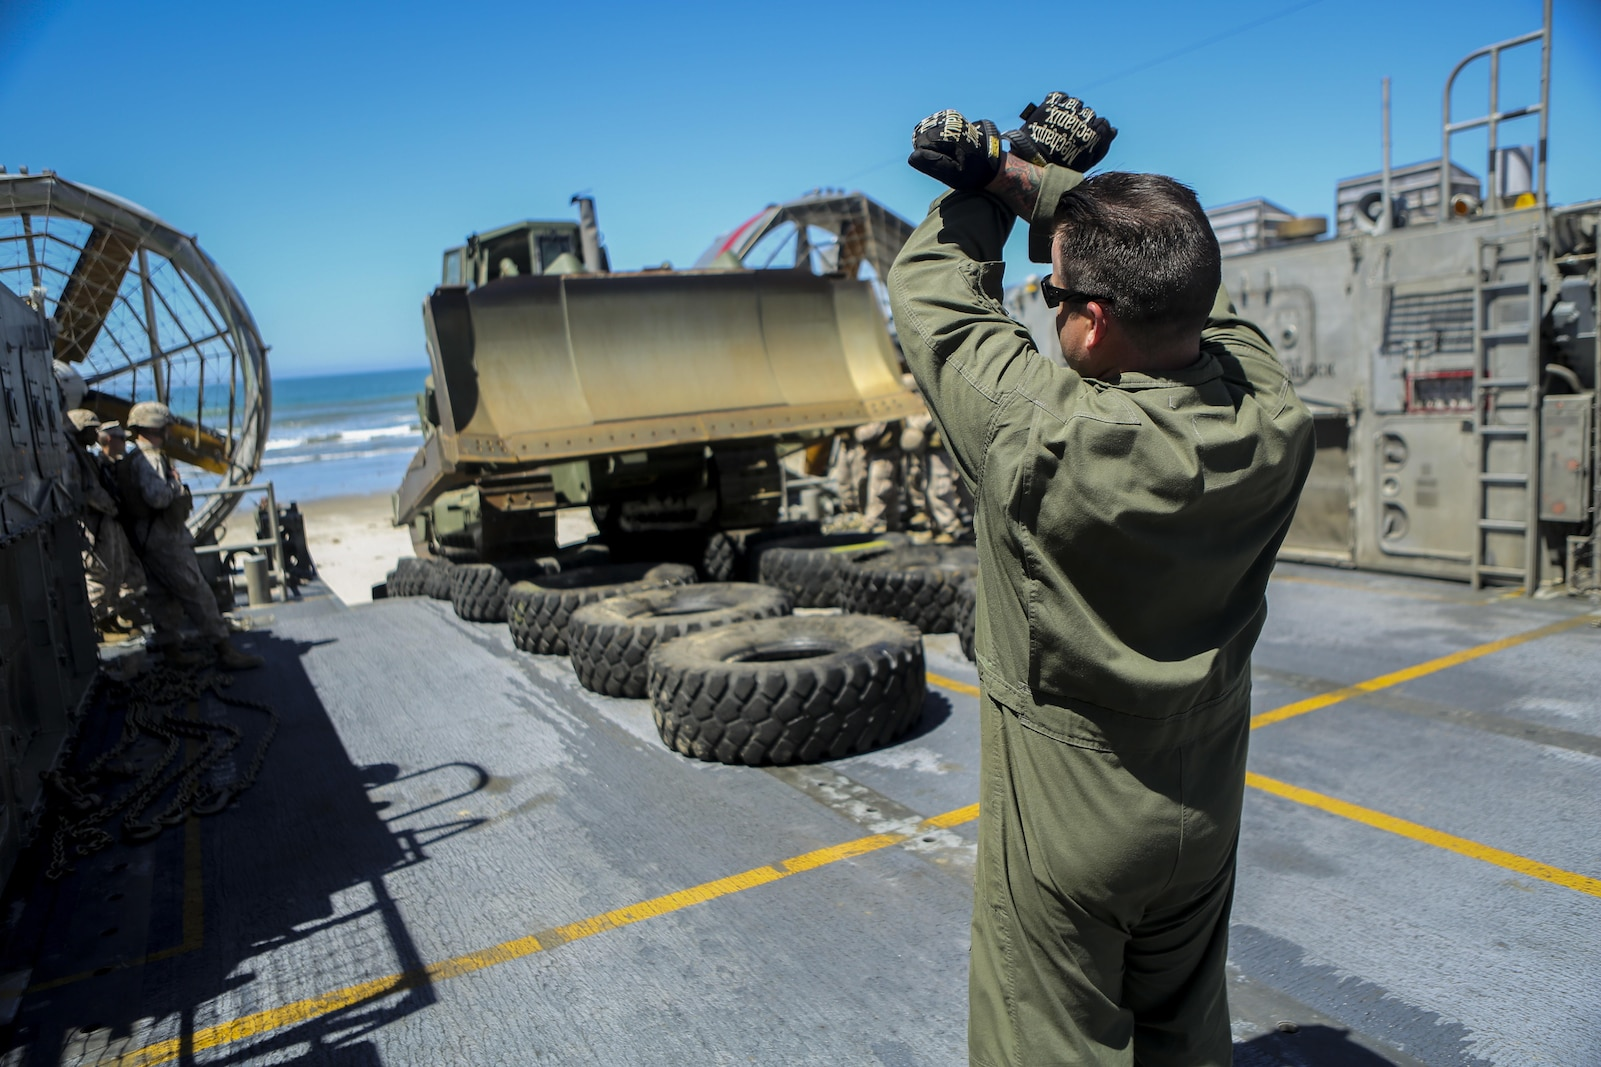 A U.S. Sailor with Assault Craft Unit 5 loads a U.S. Marine Humvee onto a Landing Craft Air Cushioned (LCAC) as part of an exercise along side Bulk Fuel Company, 7th Engineer Support Battalion aboard Camp Pendleton, Calif., April 27, 2015. This exercise reinforces the Marine Corps' role as an amphibious force in readiness by maintaining capabilities through realistic training. (U.S. Marine Corps photo by Lance Cpl. Lauren Falk/Released)